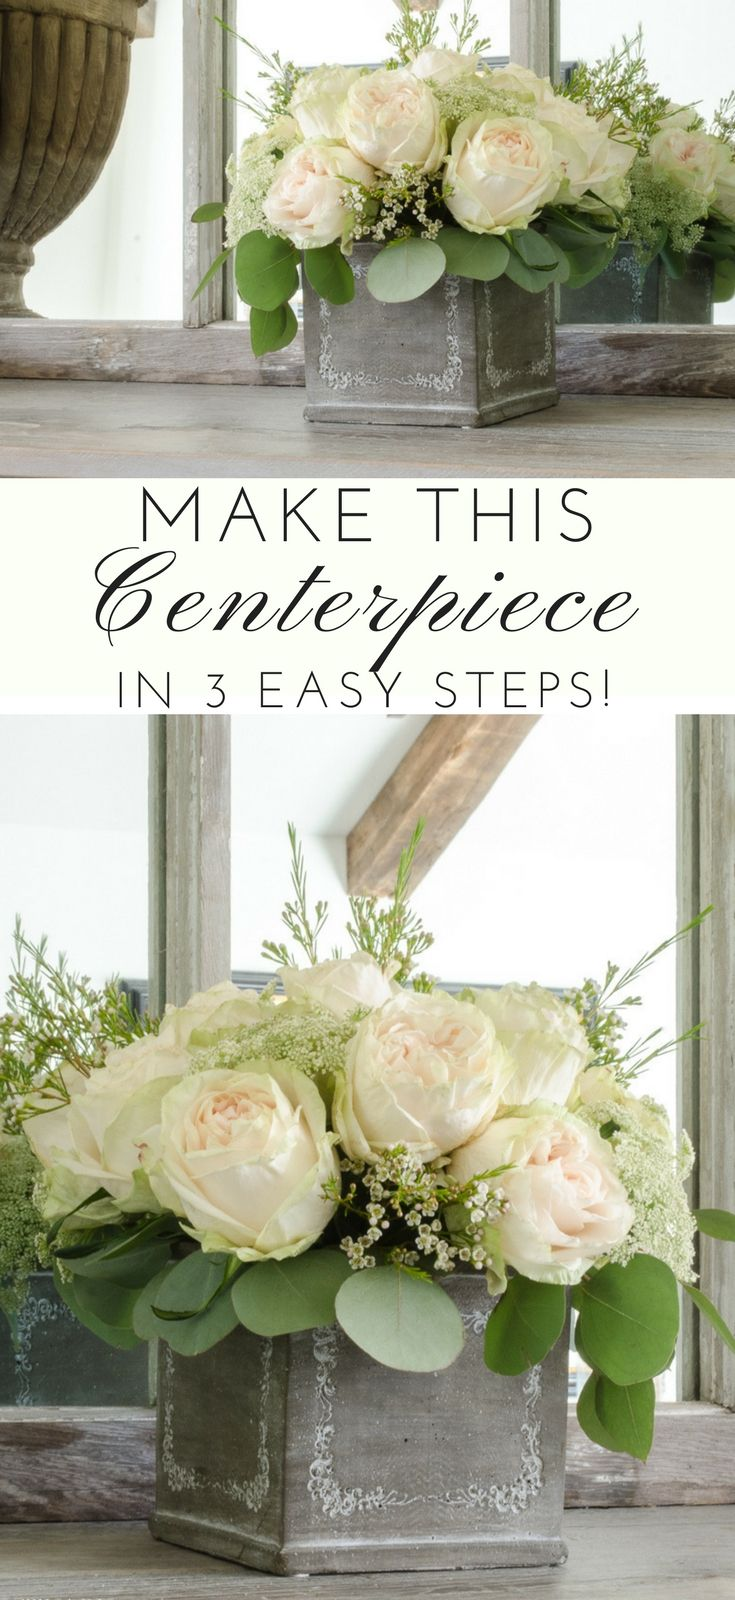 Make This Floral Arrangement in 3 Easy Steps! | Wedding centrepieces ...